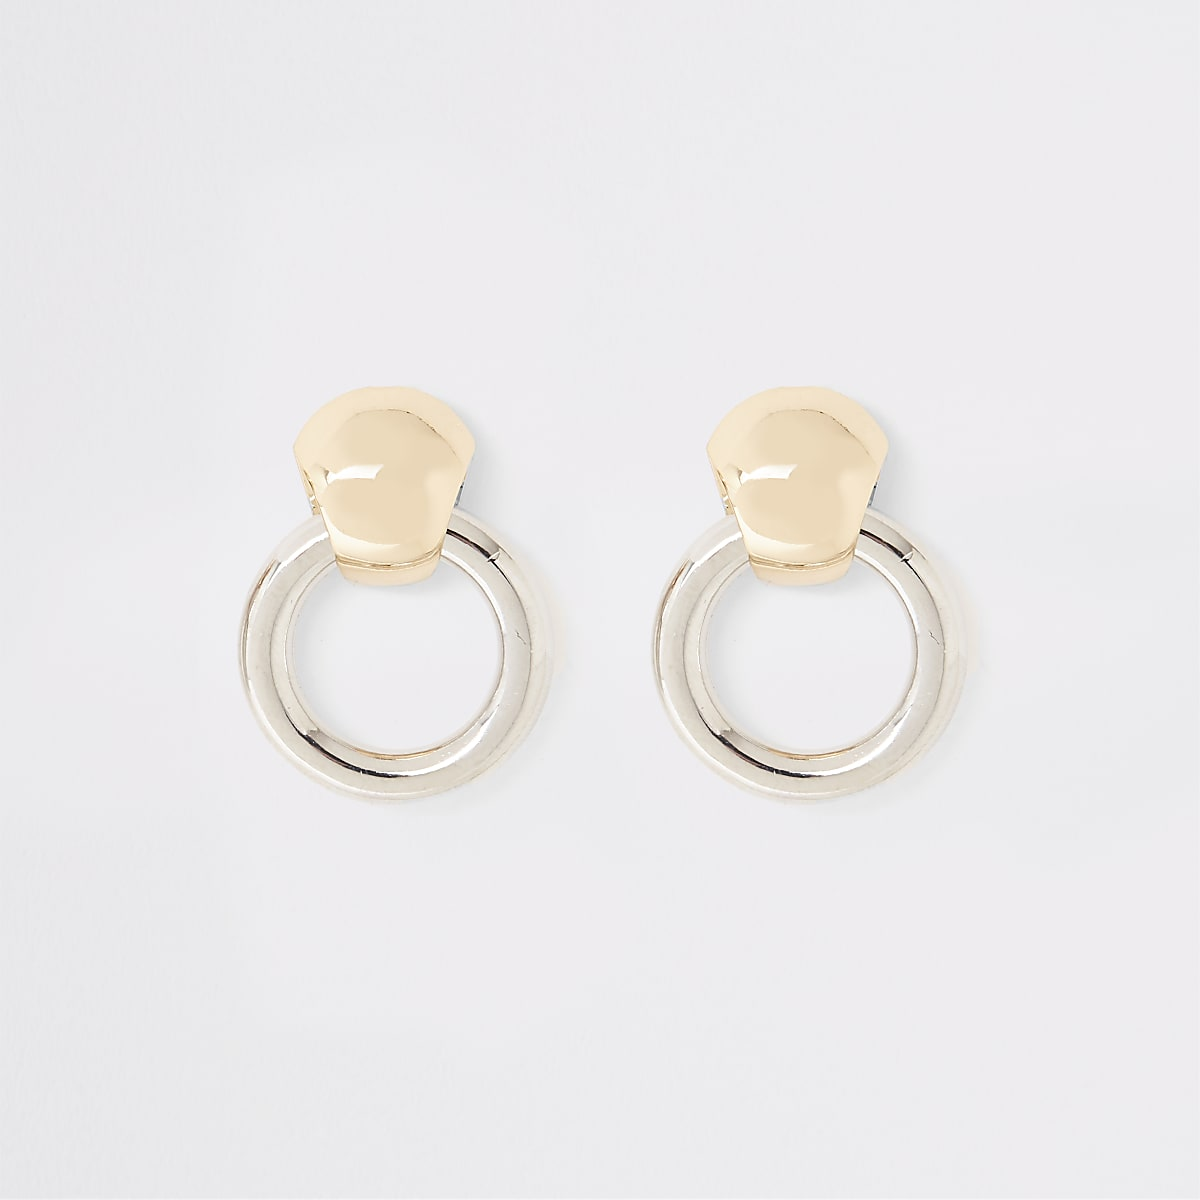 Gold and silver color circle stud earrings